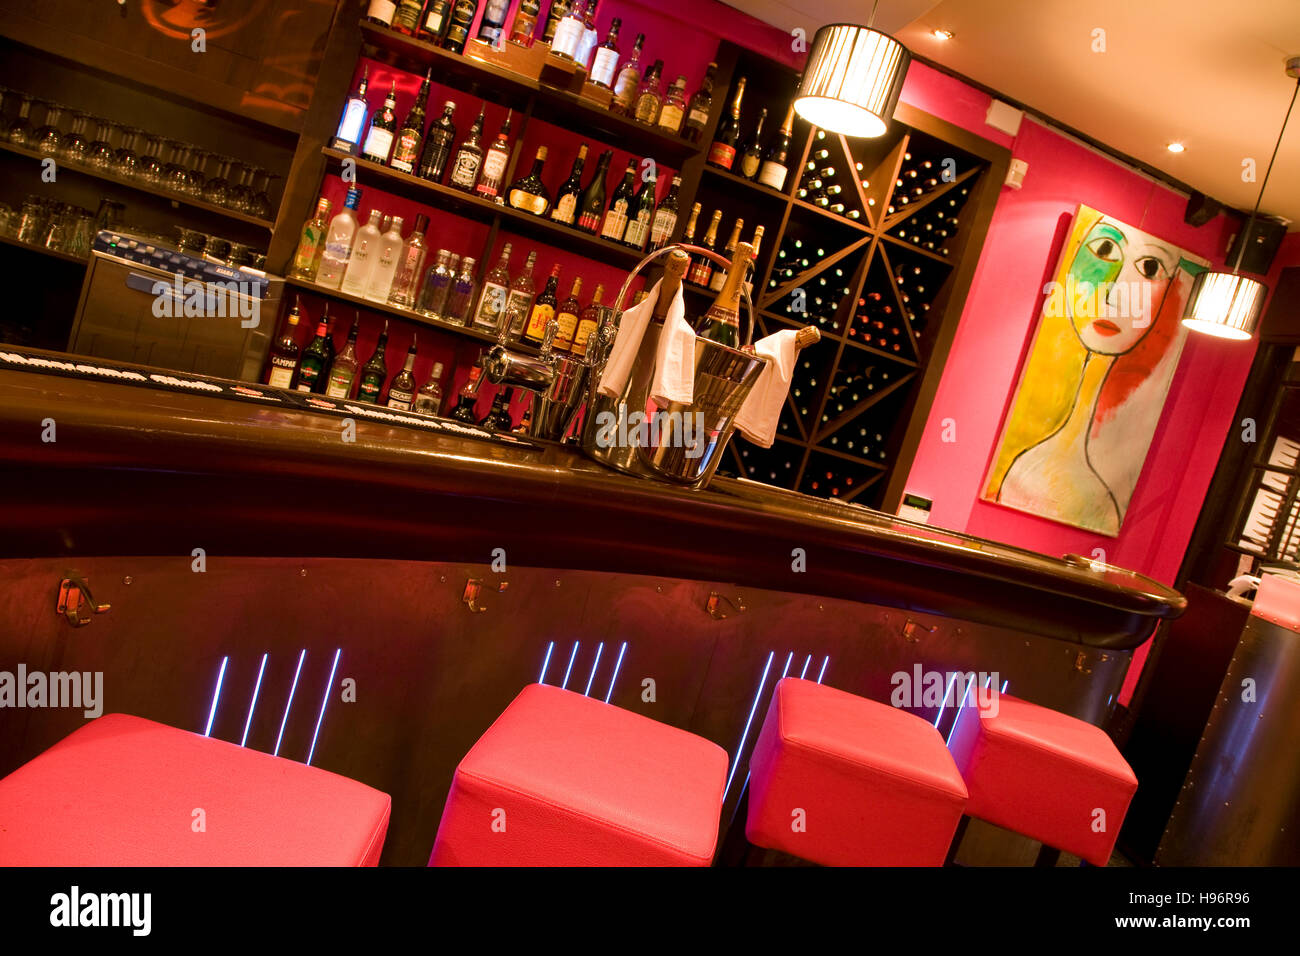 french bar pubs stock photos french bar pubs stock images alamy. Black Bedroom Furniture Sets. Home Design Ideas